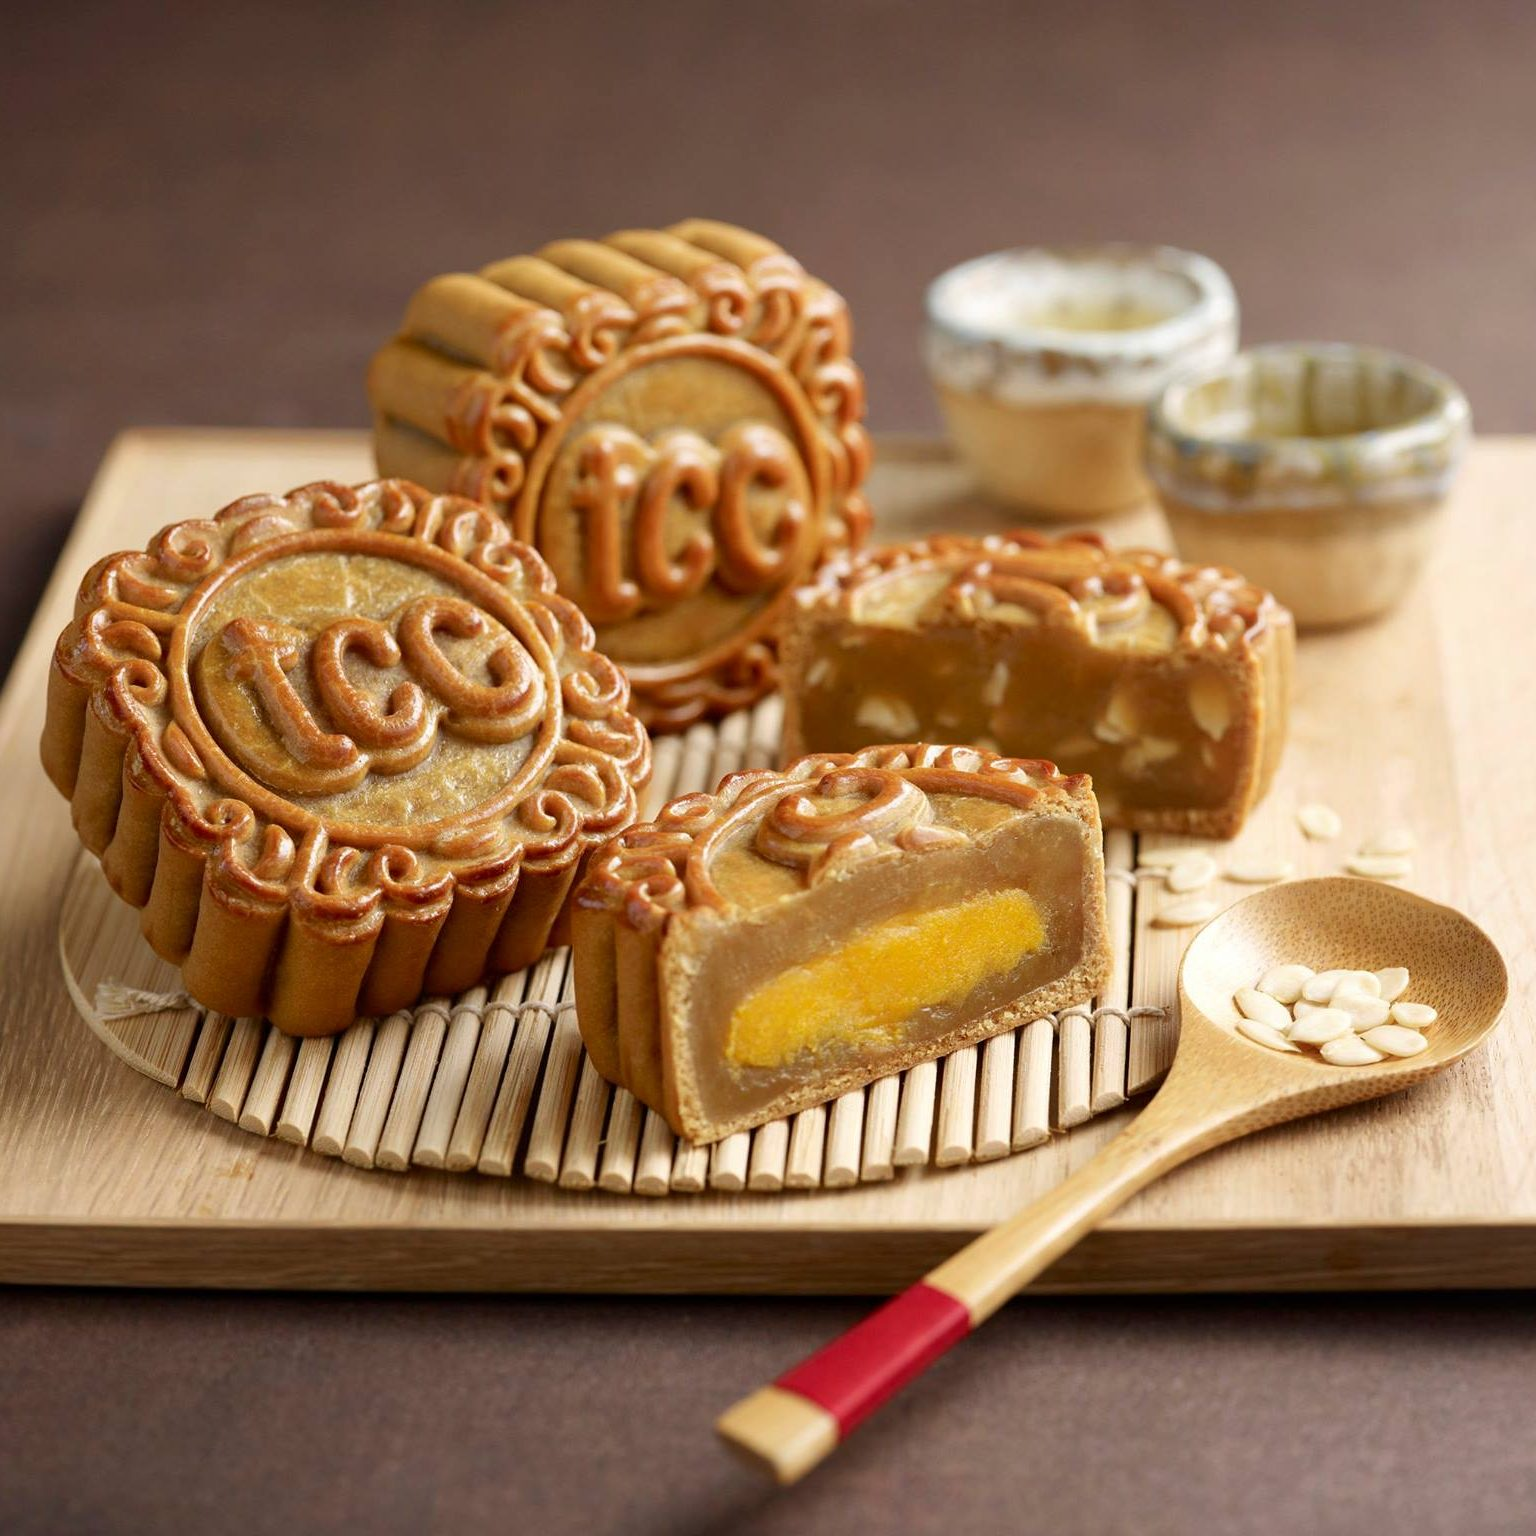 TCC Mooncakes up to 25% Off Singapore Promotion ends 15 Sep 2016